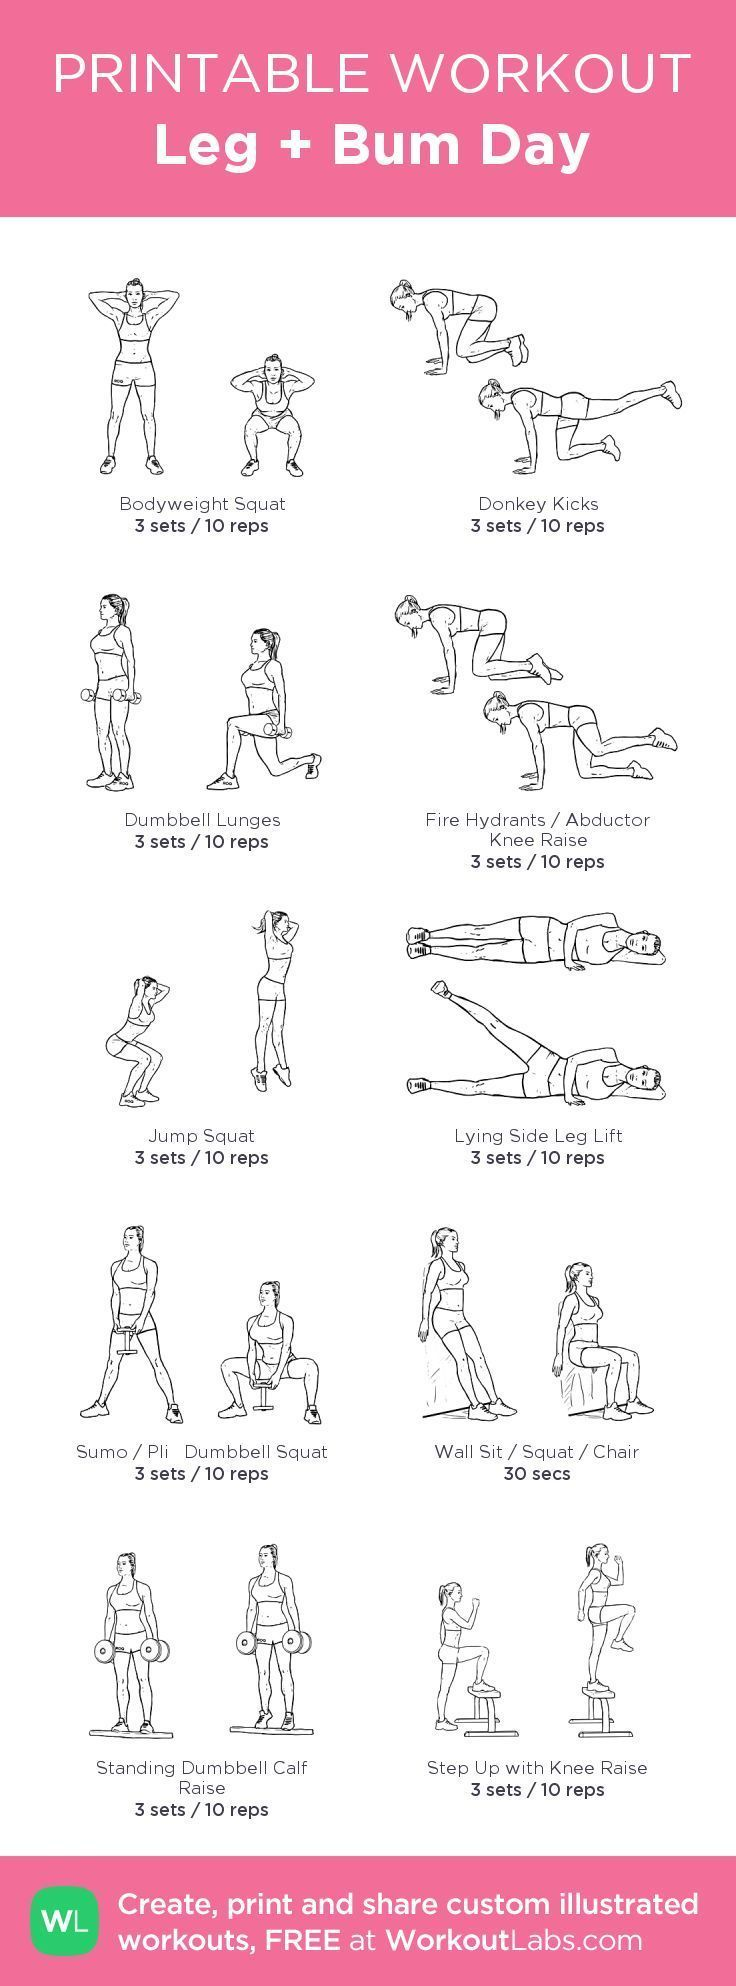 image relating to Printable Arm Workouts referred to as Exercise Determination : great Leg Bum Working day Exercise #fitspiration